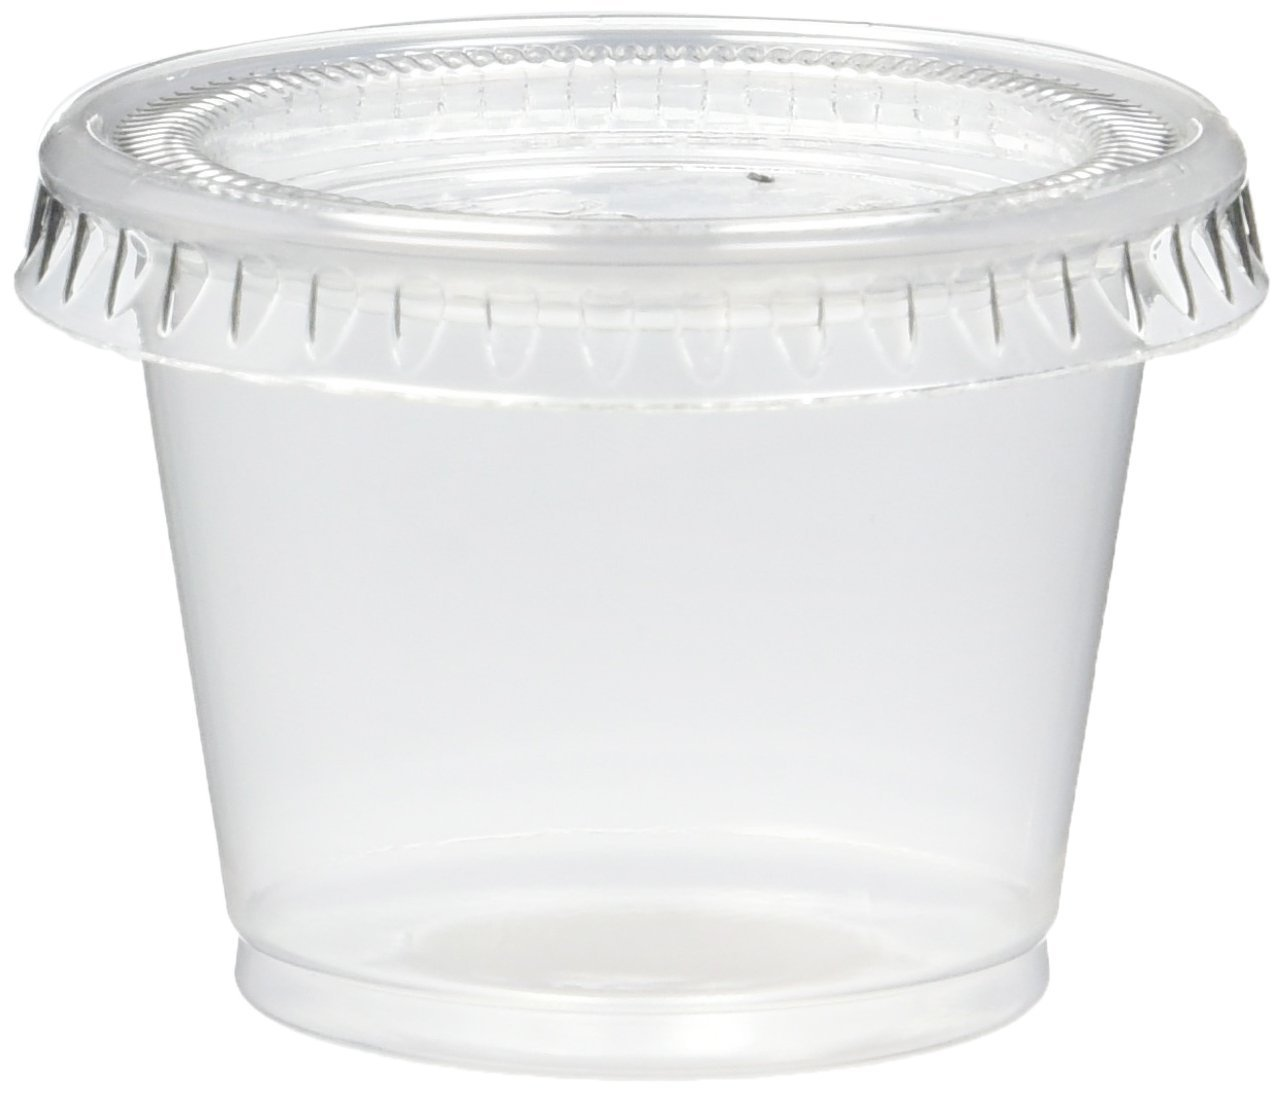 250 Count Jello Shot Souffle Cups and Lids, 1-Ounce, Translucent by Mr. Miracle